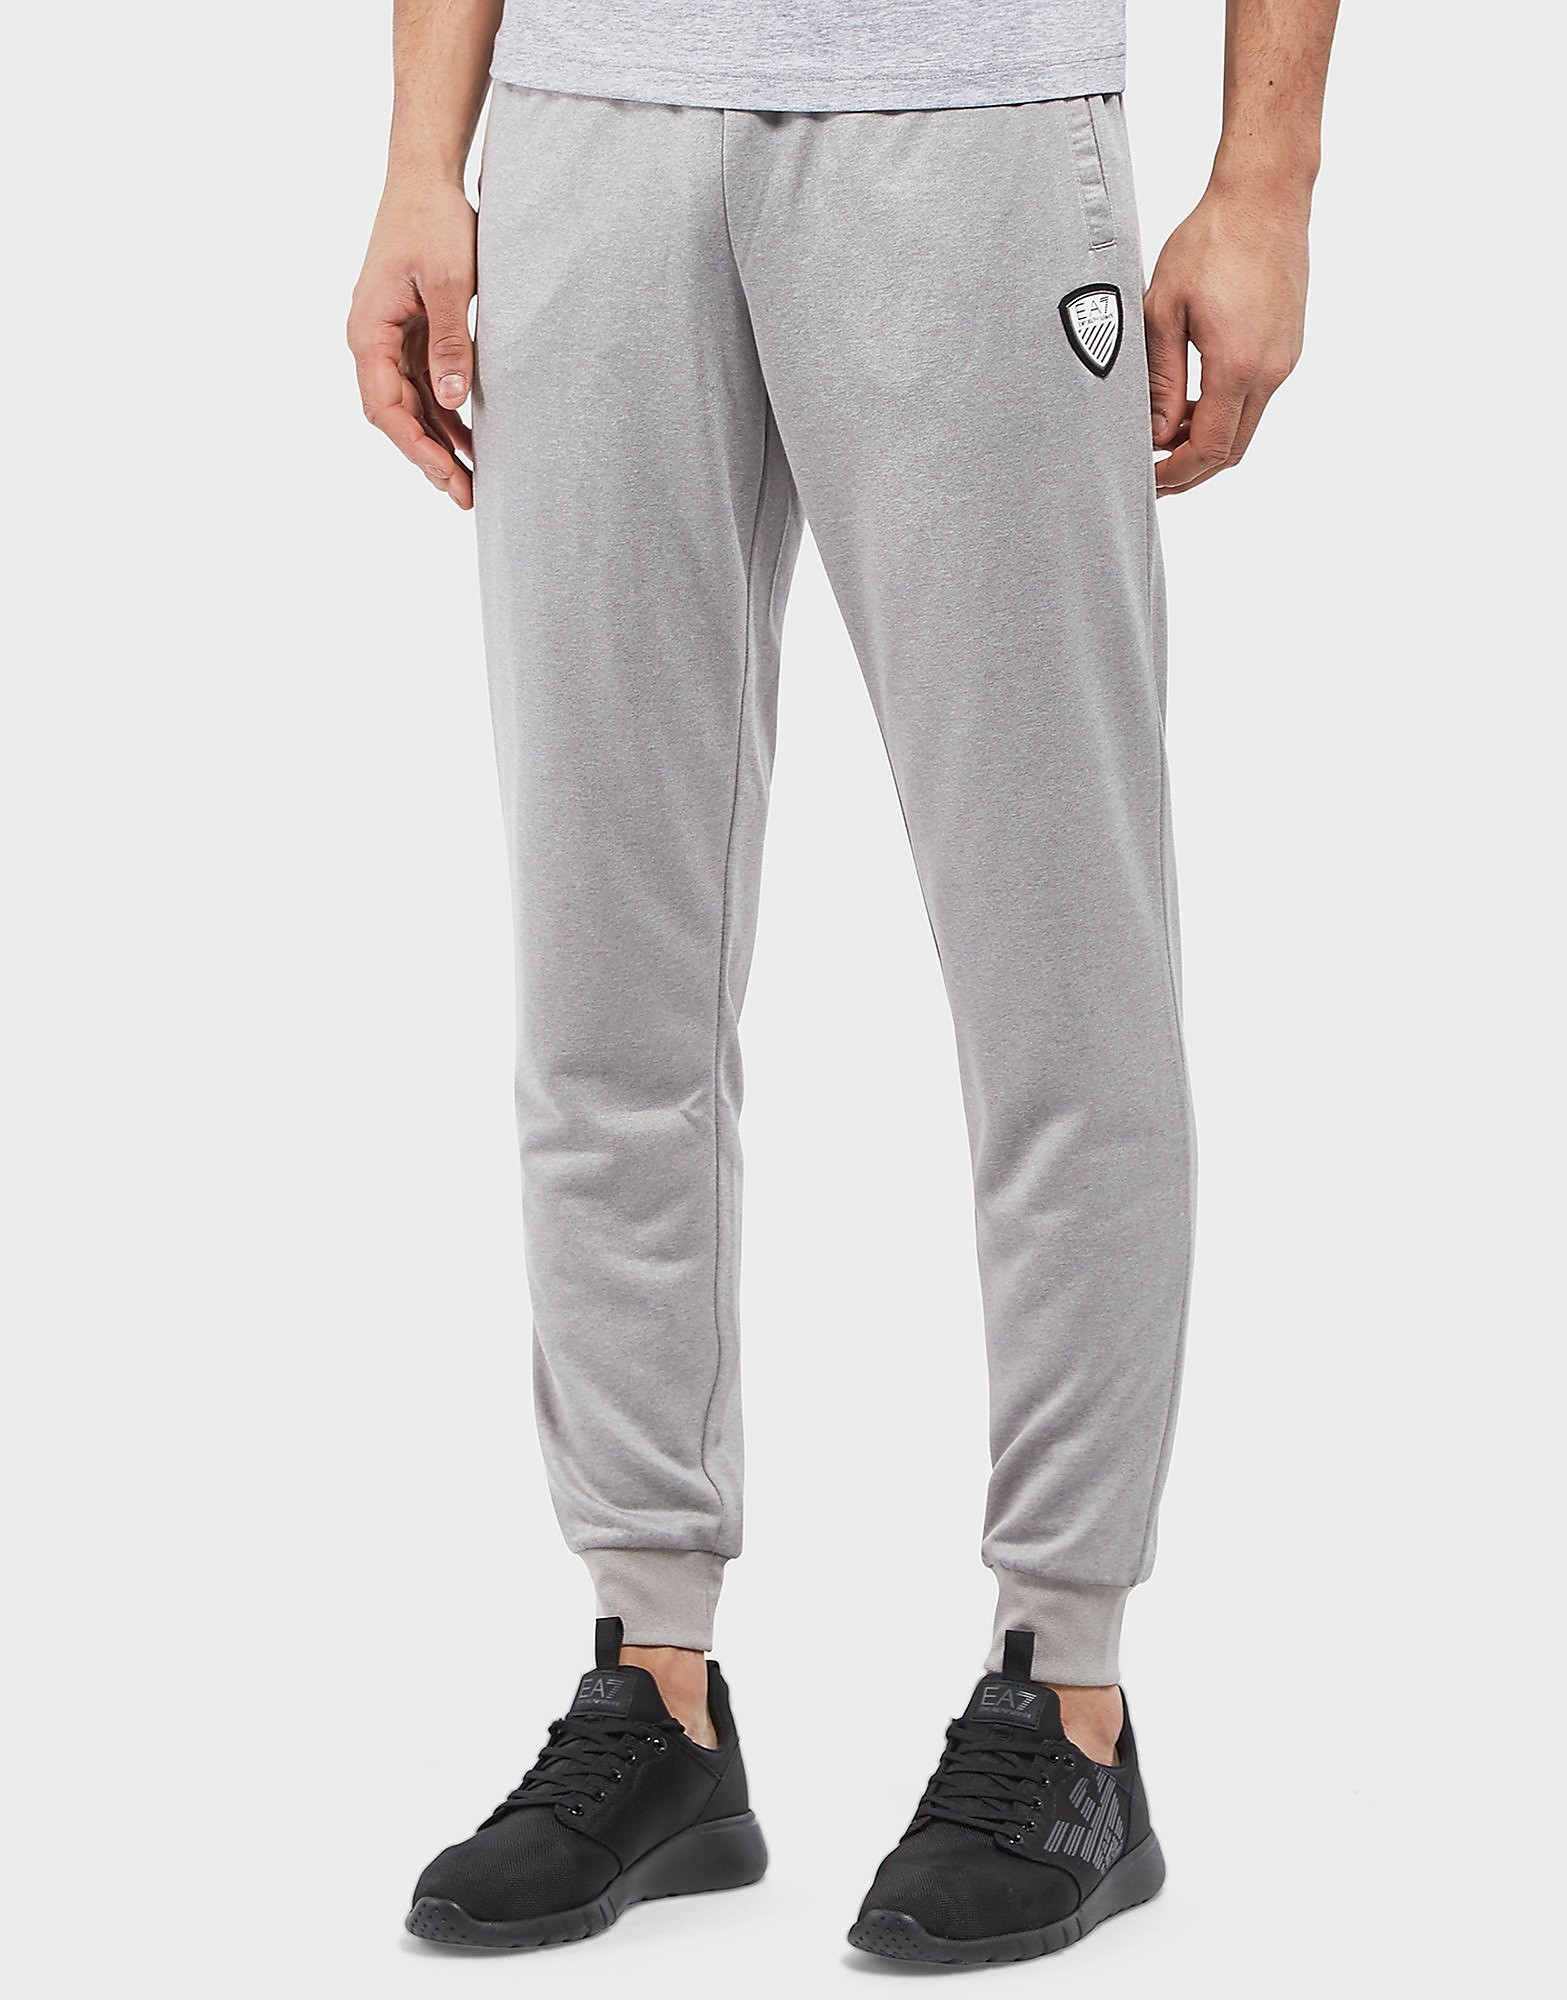 Emporio Armani EA7 Shield Cuffed Track Pants - Exclusive